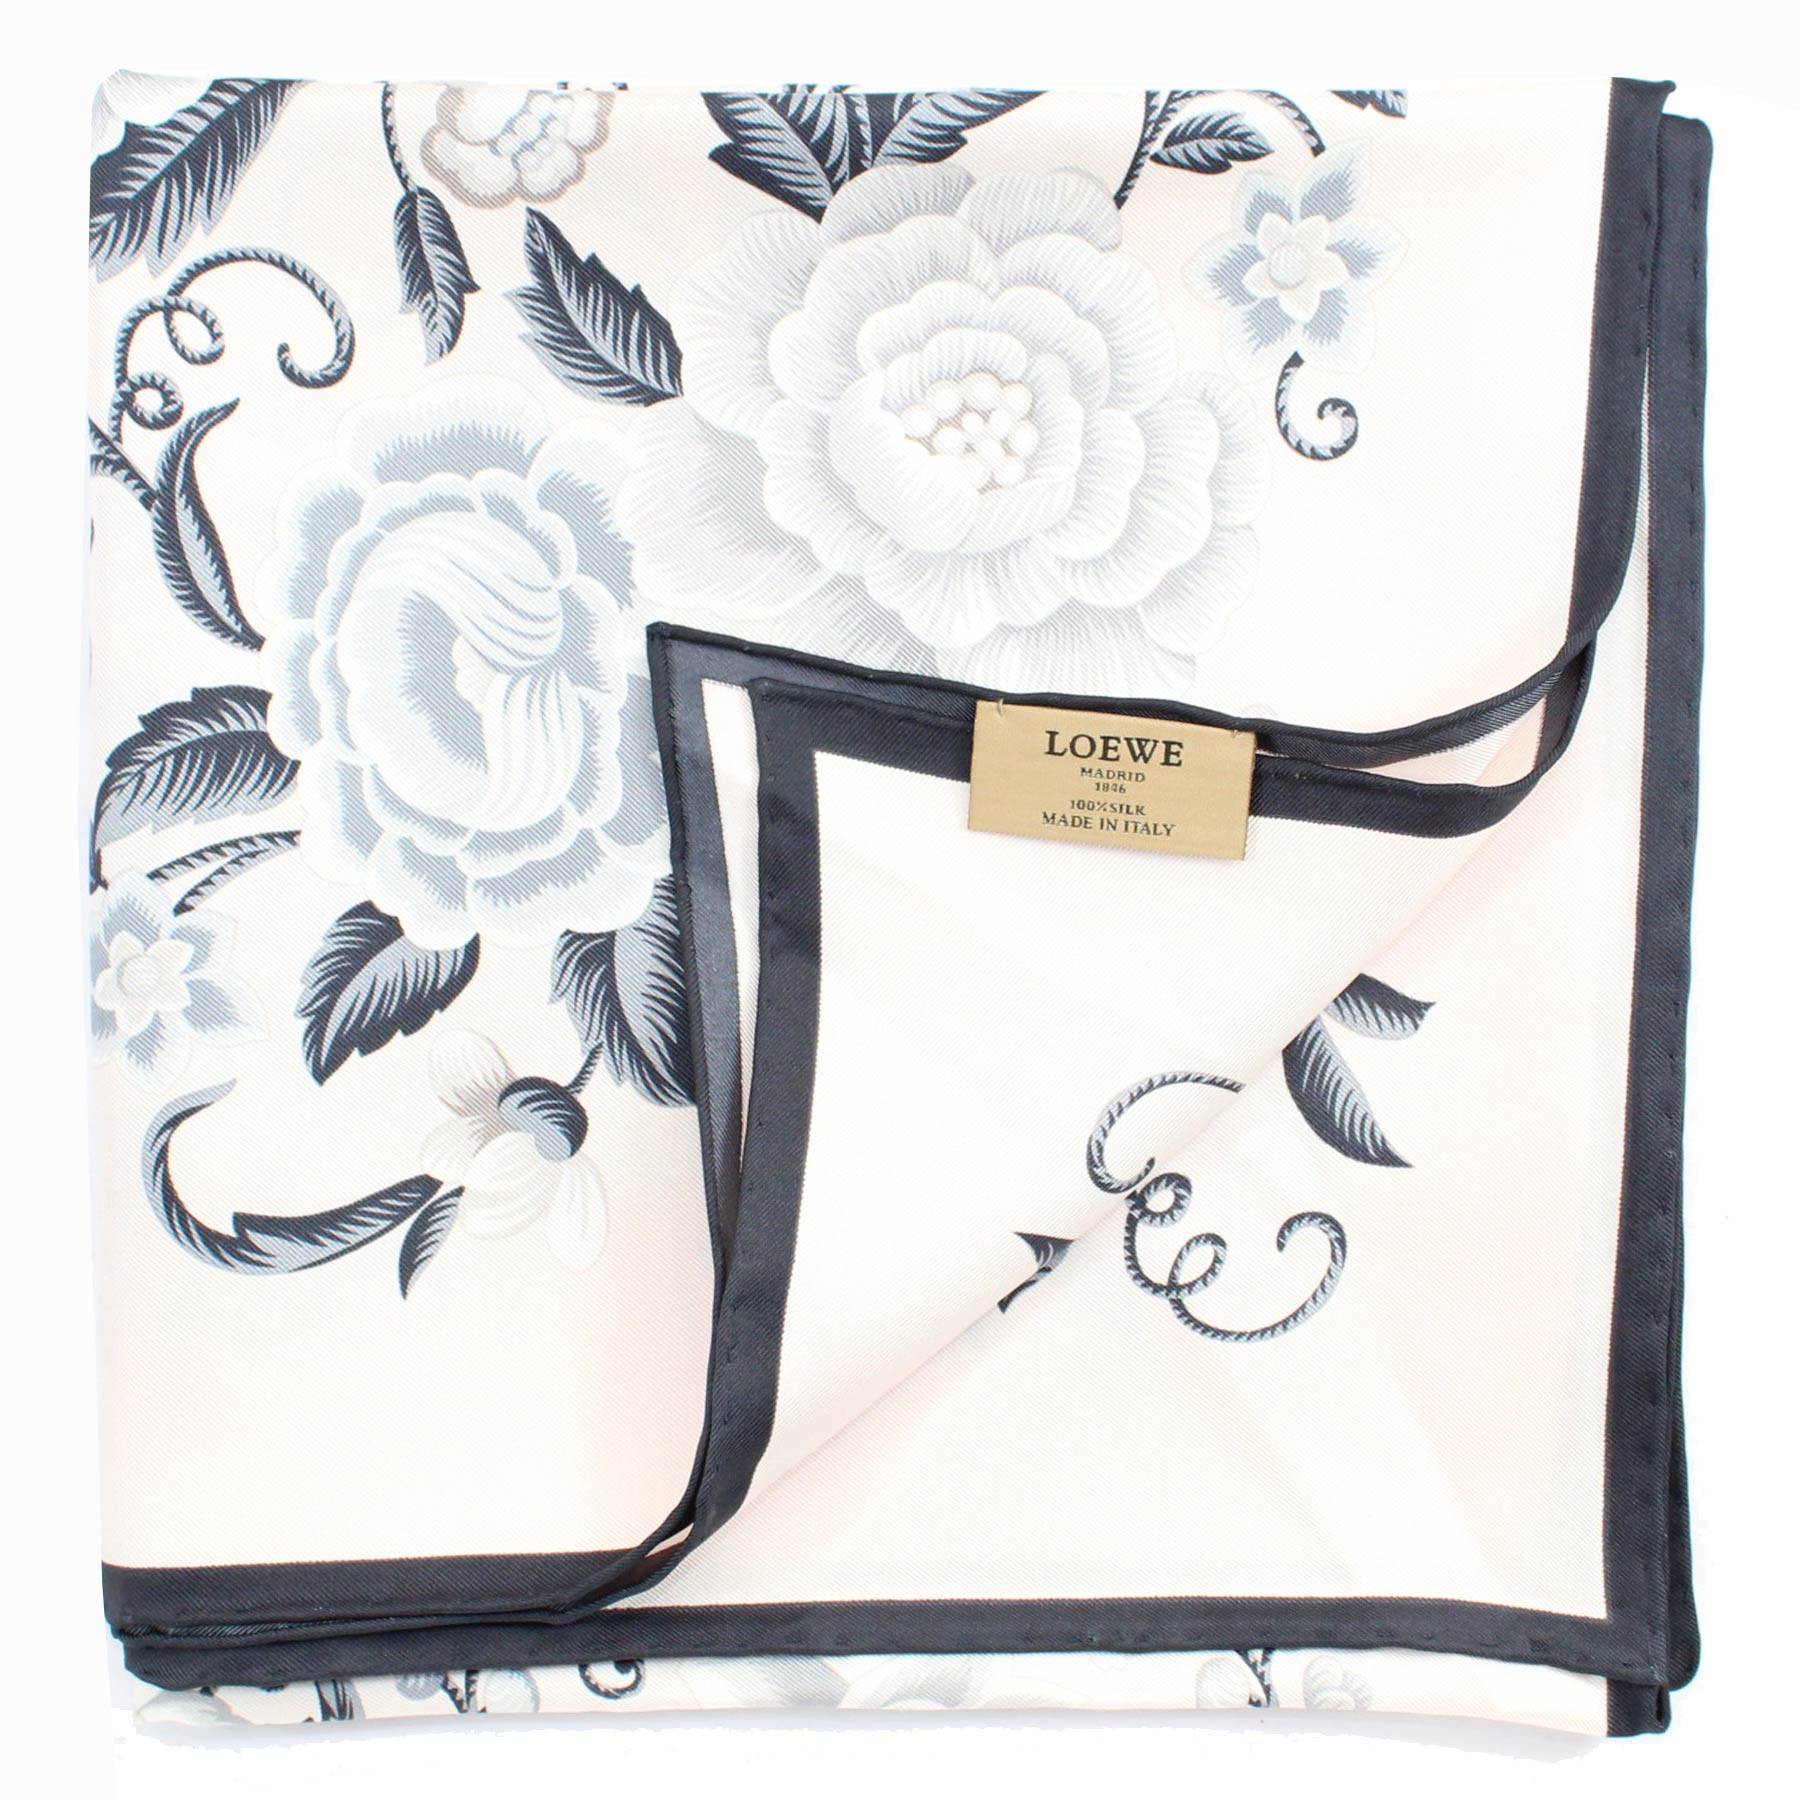 Loewe Silk Scarf Light Pink Gray Black Floral - Large Square Scarf FINAL SALE